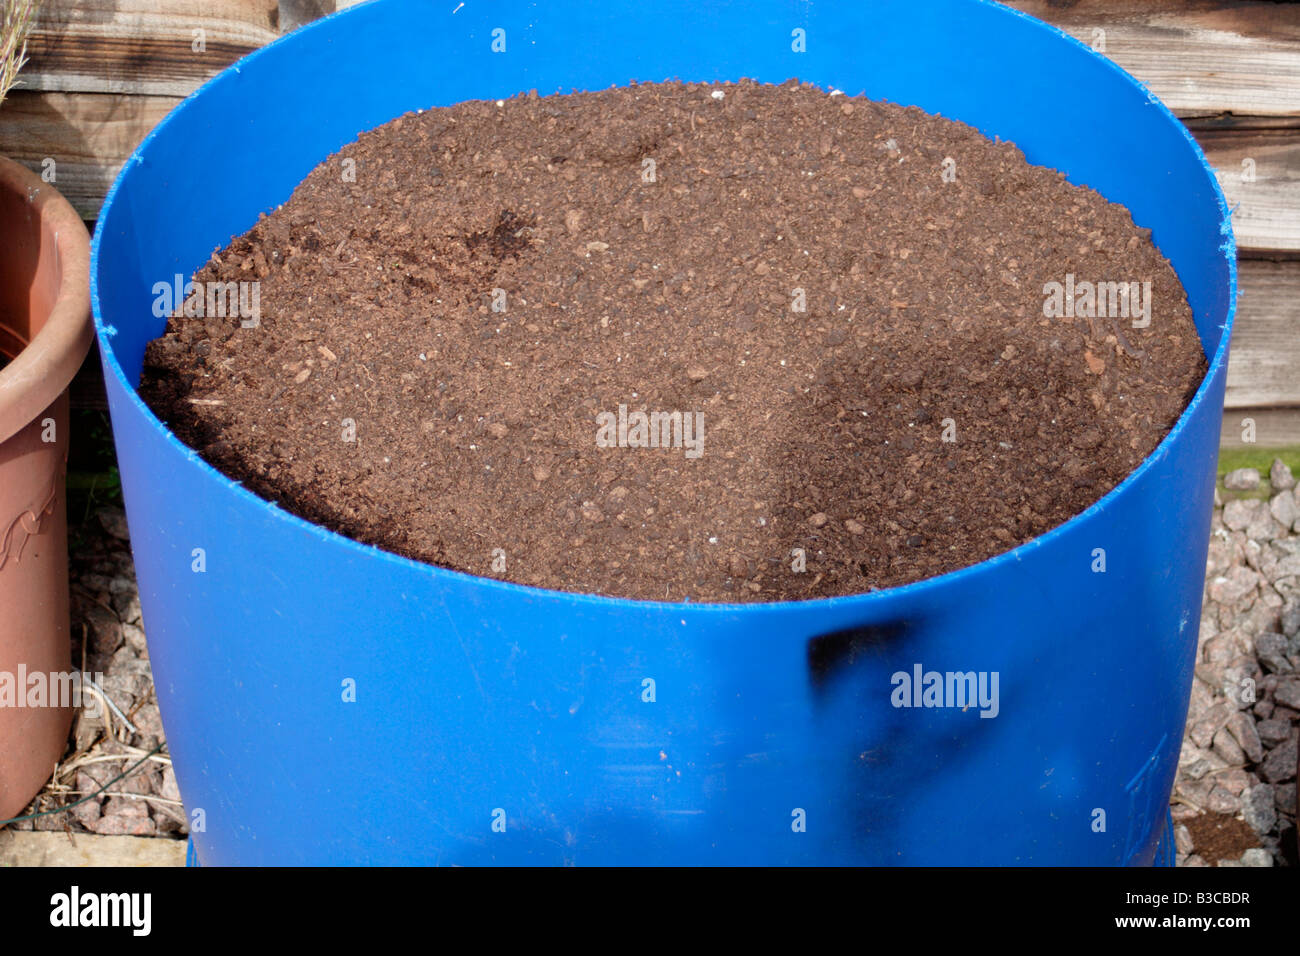 Old fertilizer barrel cut in half and used for growing vegetables in ...